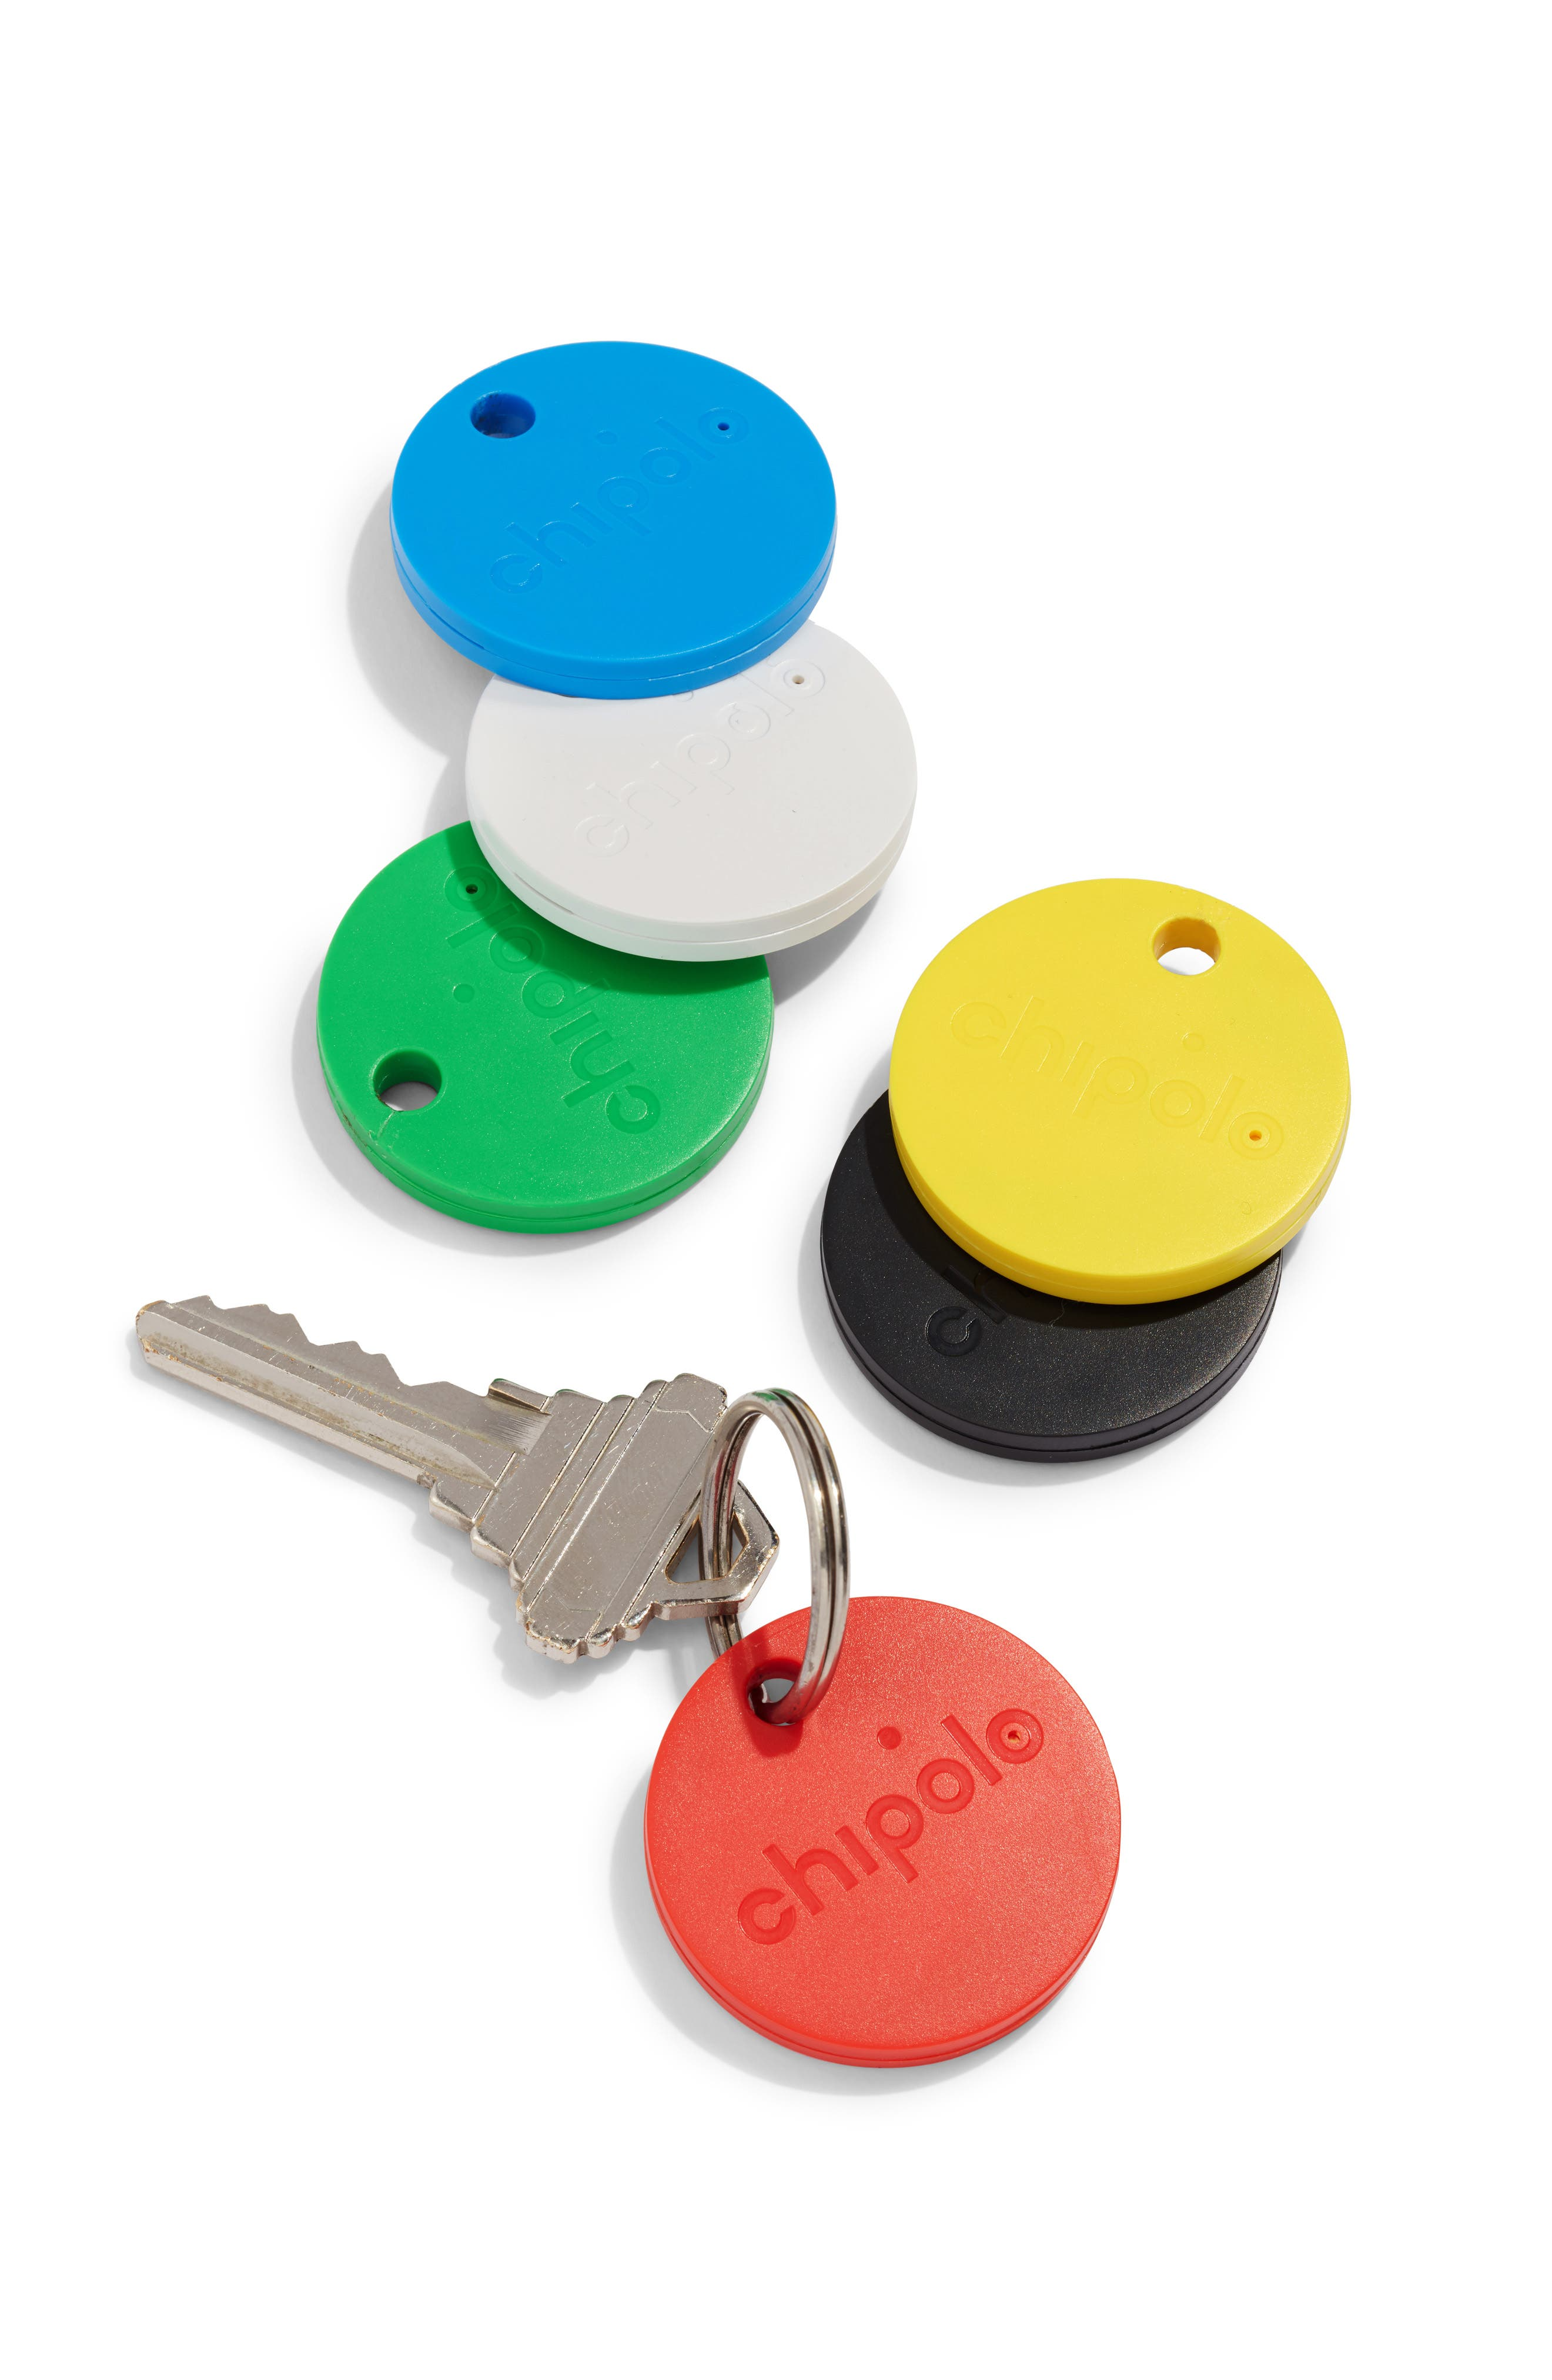 Soda Says x Chipolo Classic 2.0 Bluetooth Tracker,                             Alternate thumbnail 5, color,                             RED